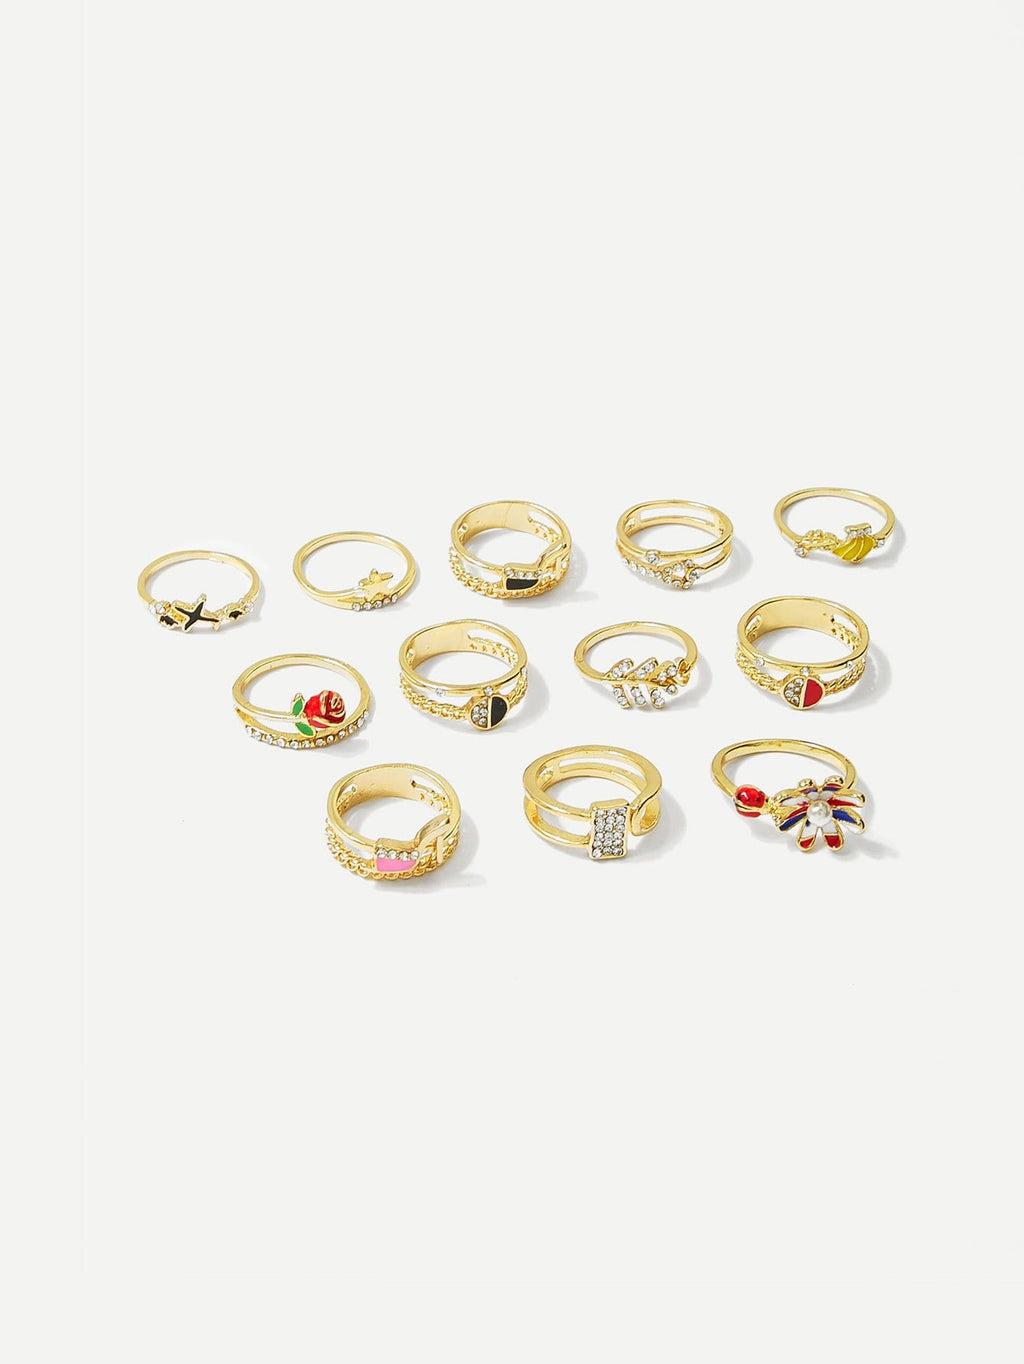 Banana & Rose Ring Set 12pcs